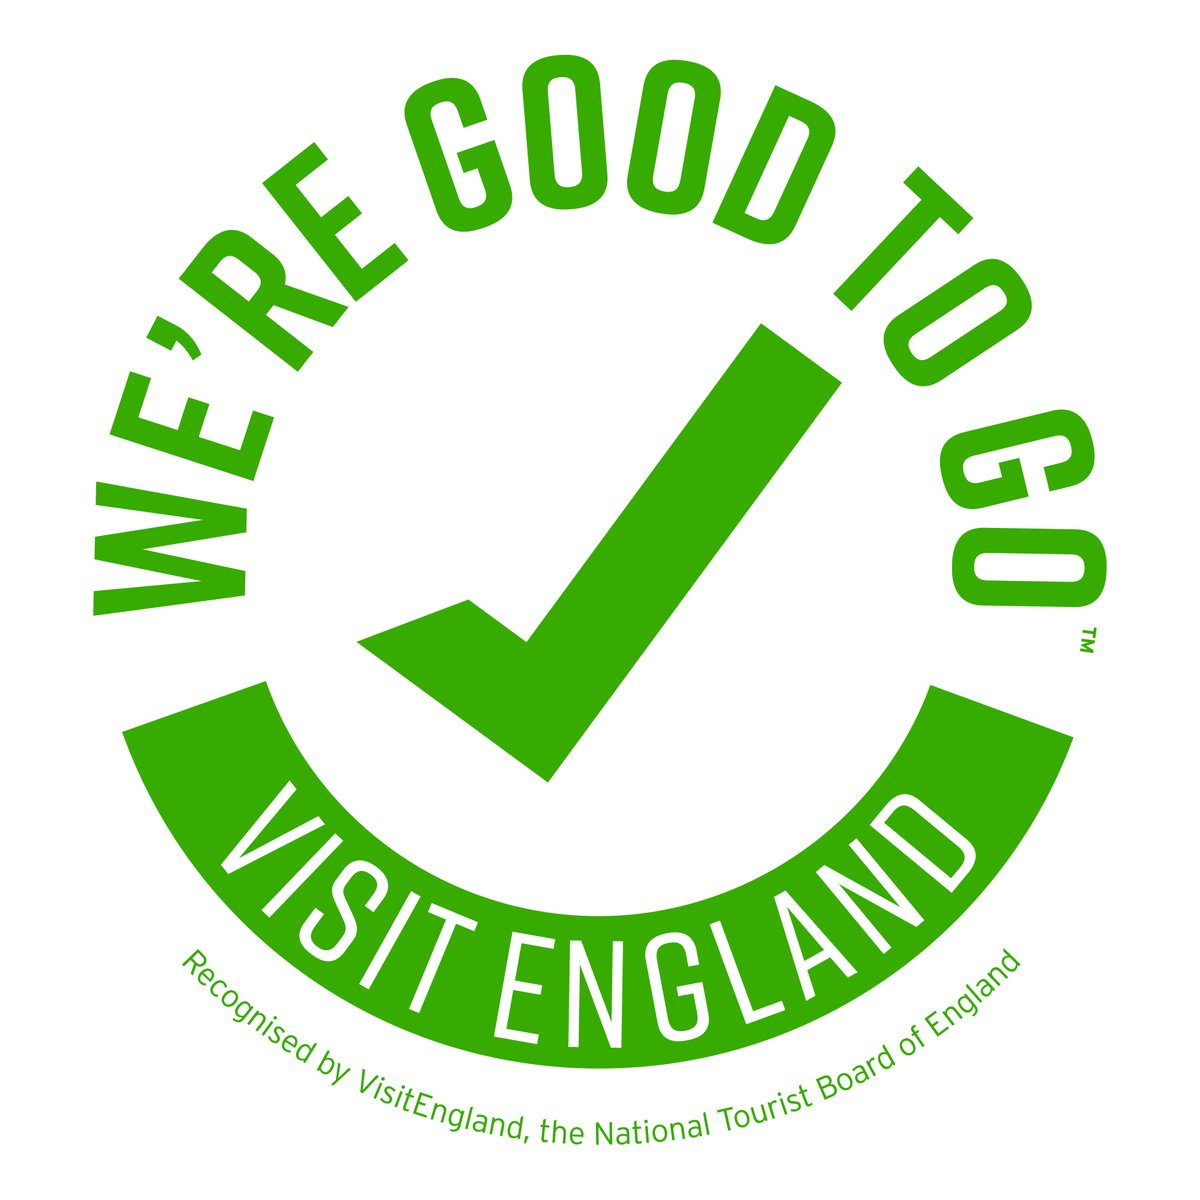 It's fabulous to see that over 400 Northumberland businesses have signed up for @VisitEngland's We're Good to Go scheme to reassure customers that their business adheres to government and public health guidance https://t.co/SFzAYljbG9